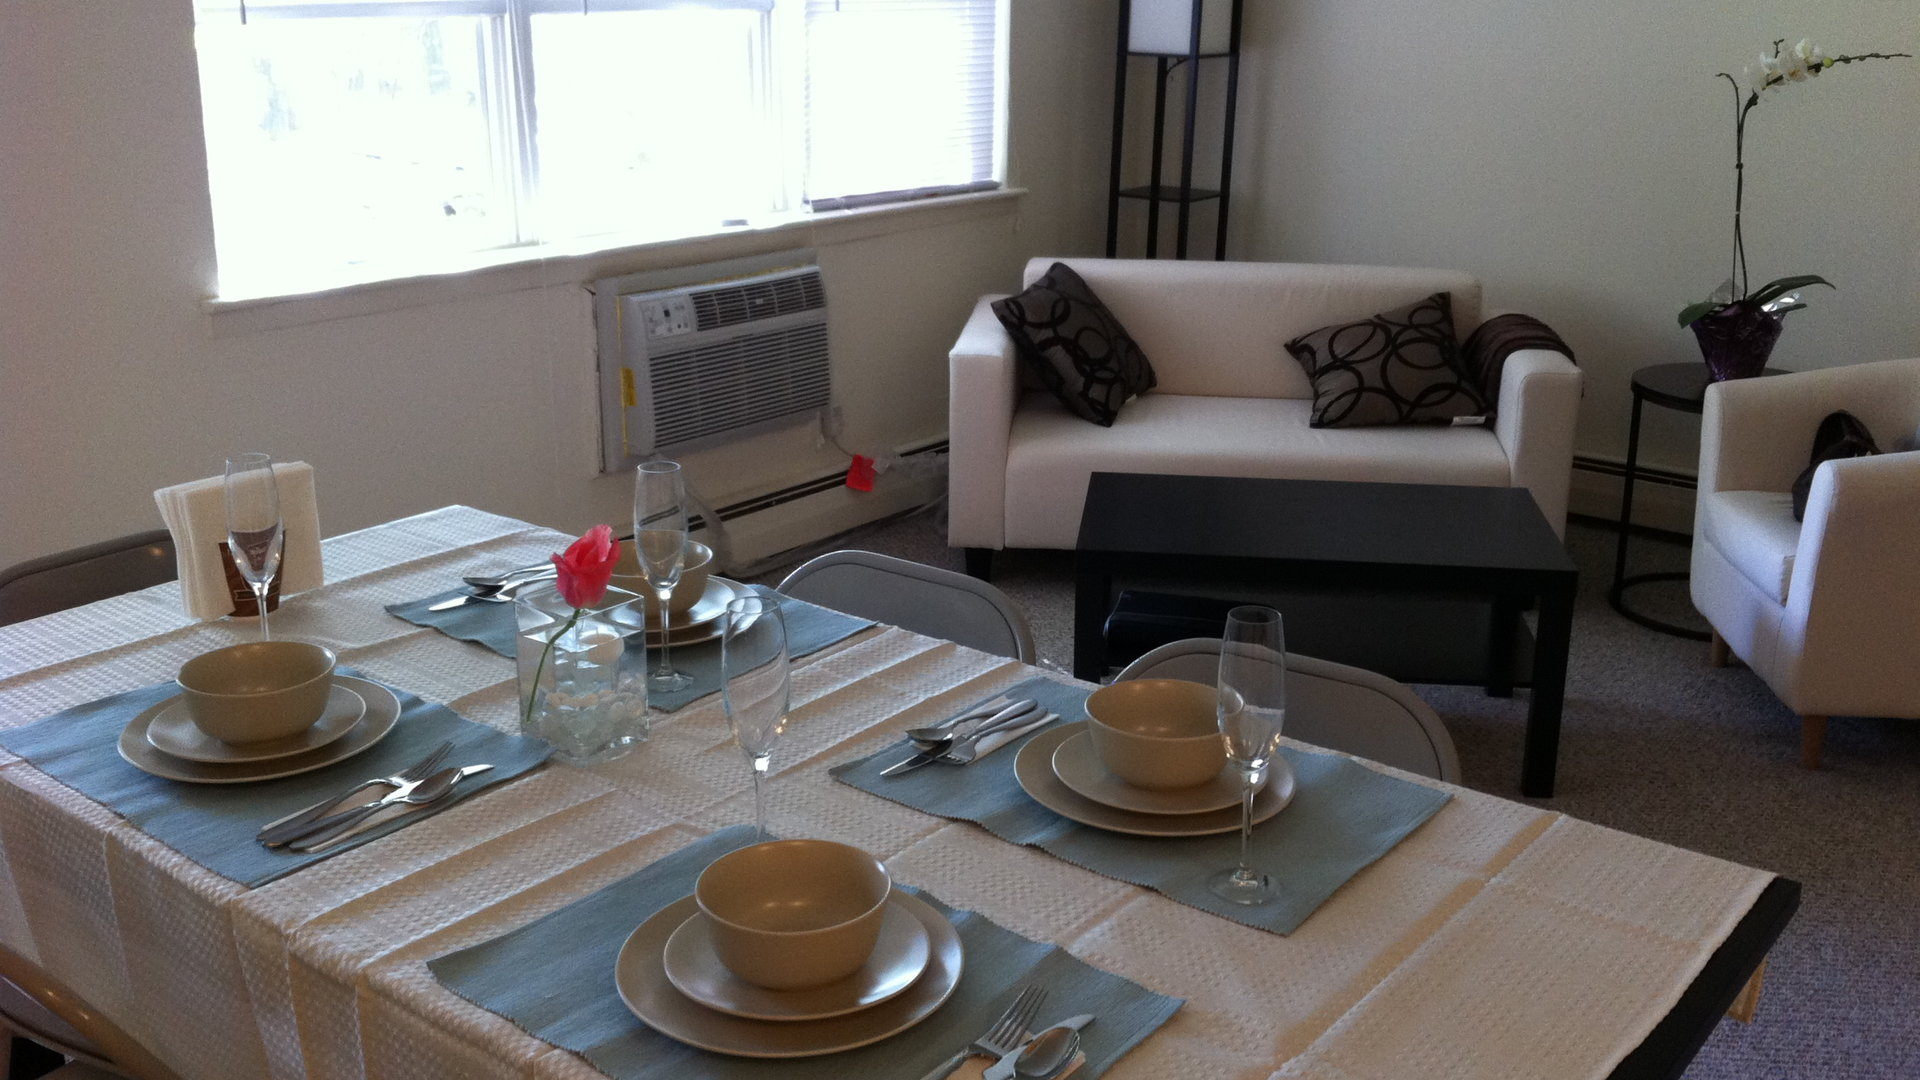 21 Apartments for Rent in Parsippany, NJ   ApartmentRatings©